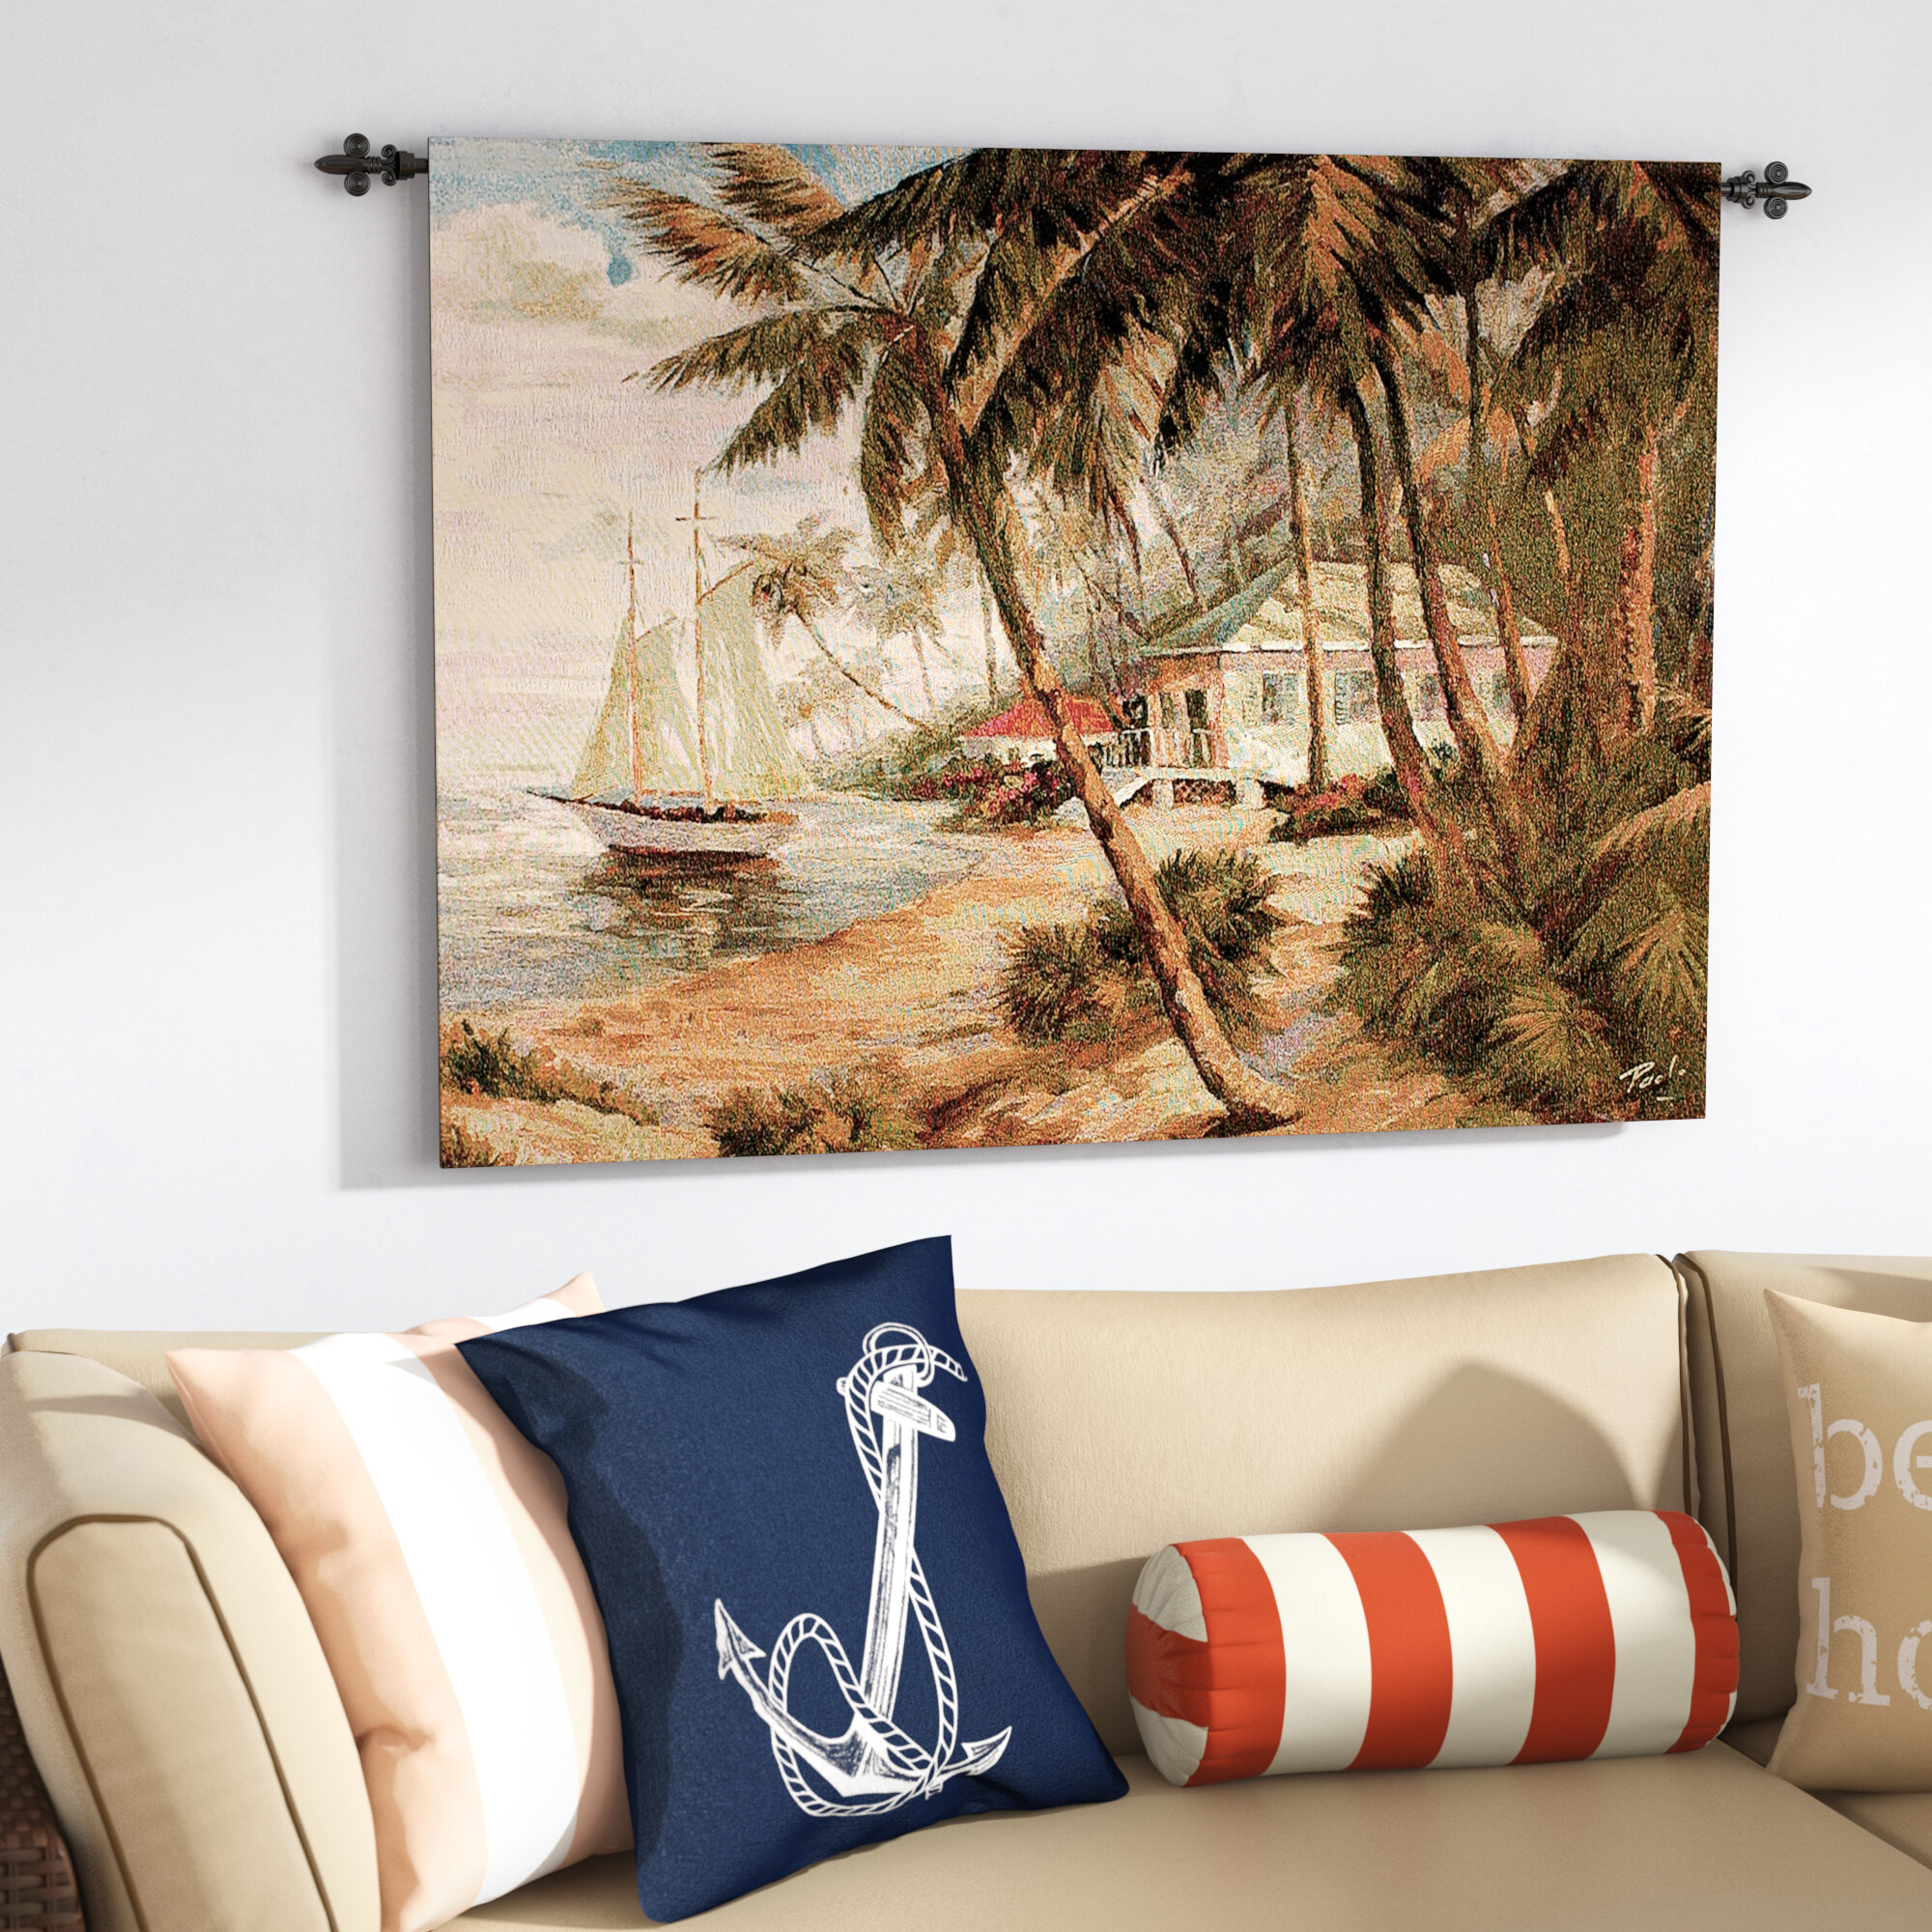 Key West Hideaway Tapestry For Best And Newest Blended Fabric Autumn Tranquility Verse Wall Hangings (View 7 of 20)